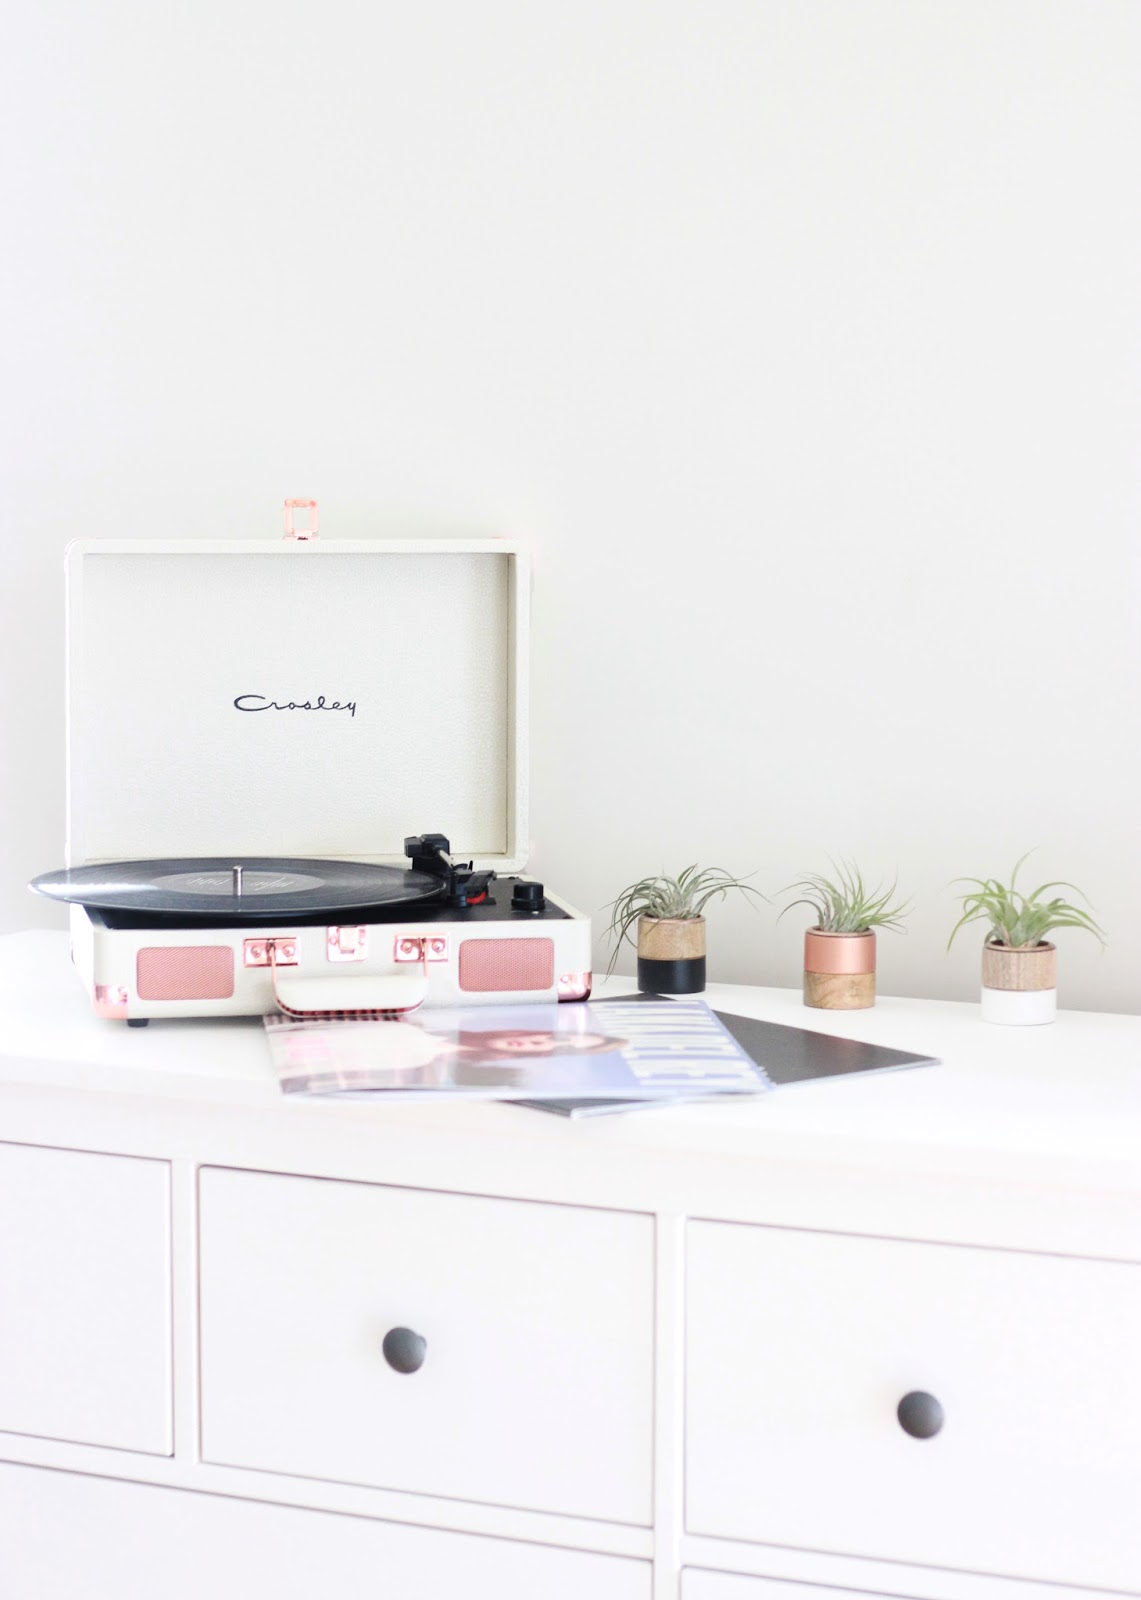 Crosley Cruiser Rose Gold Record Player